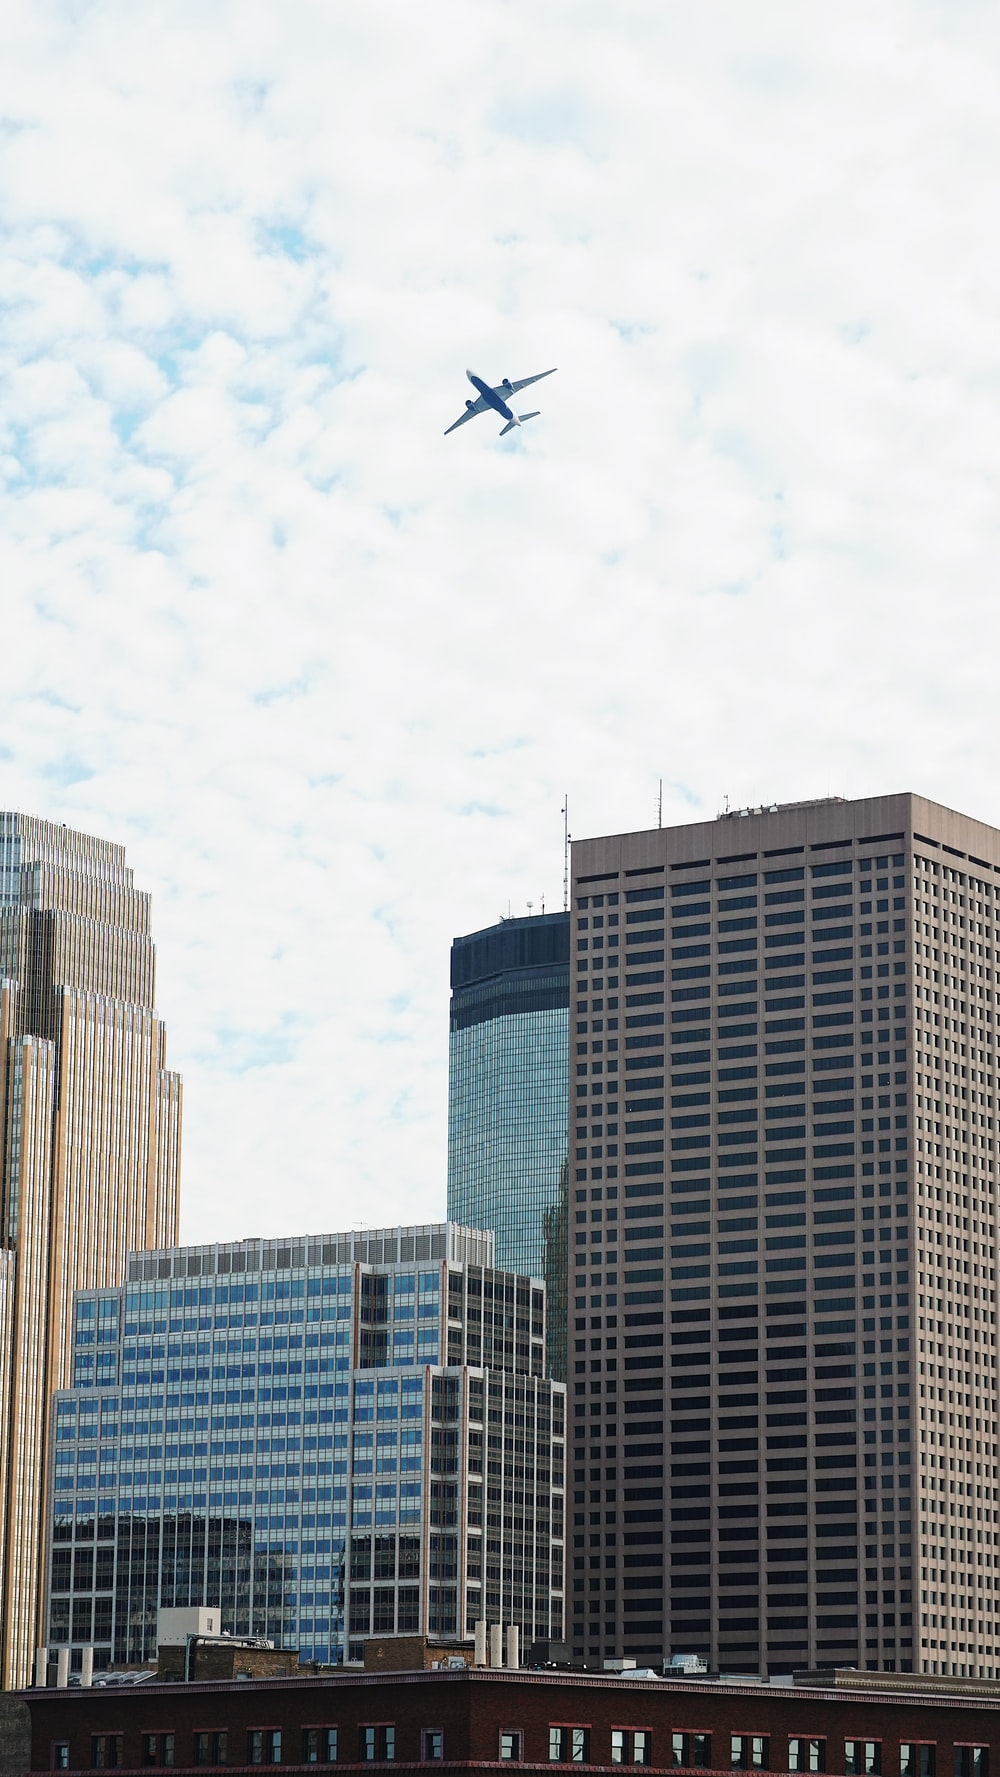 airplane flying above city during day